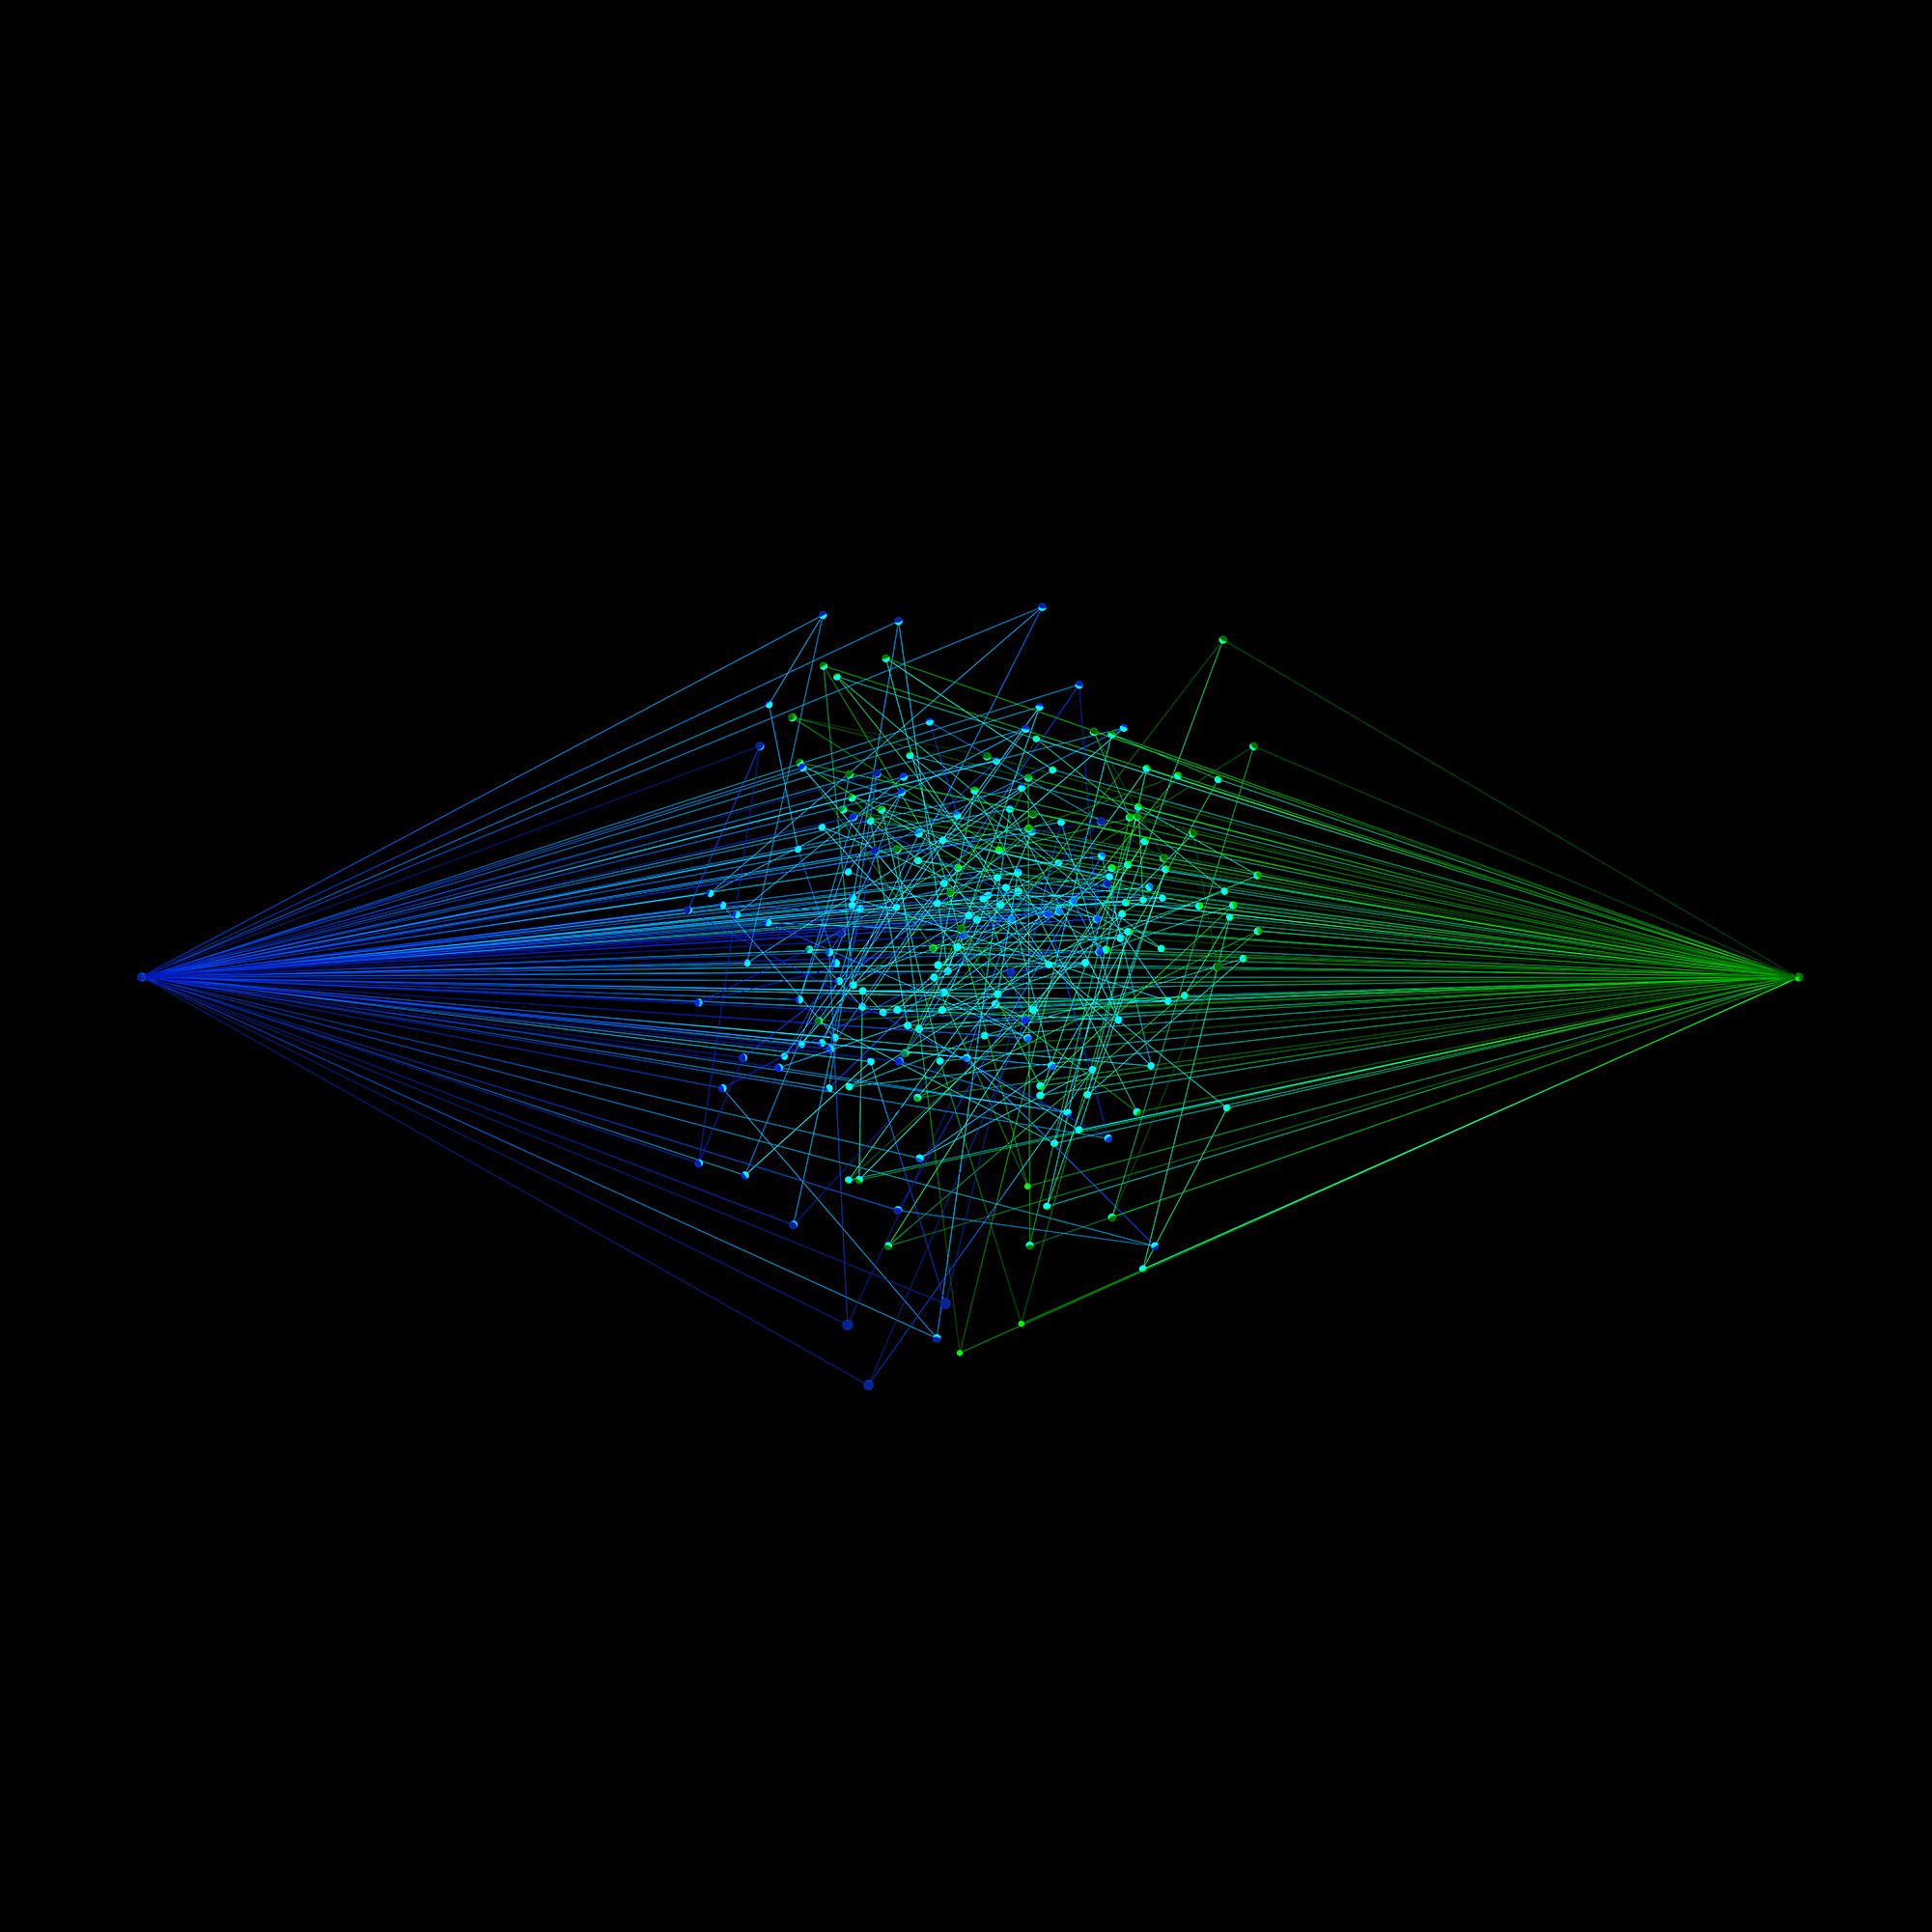 A green and a blue node connecting